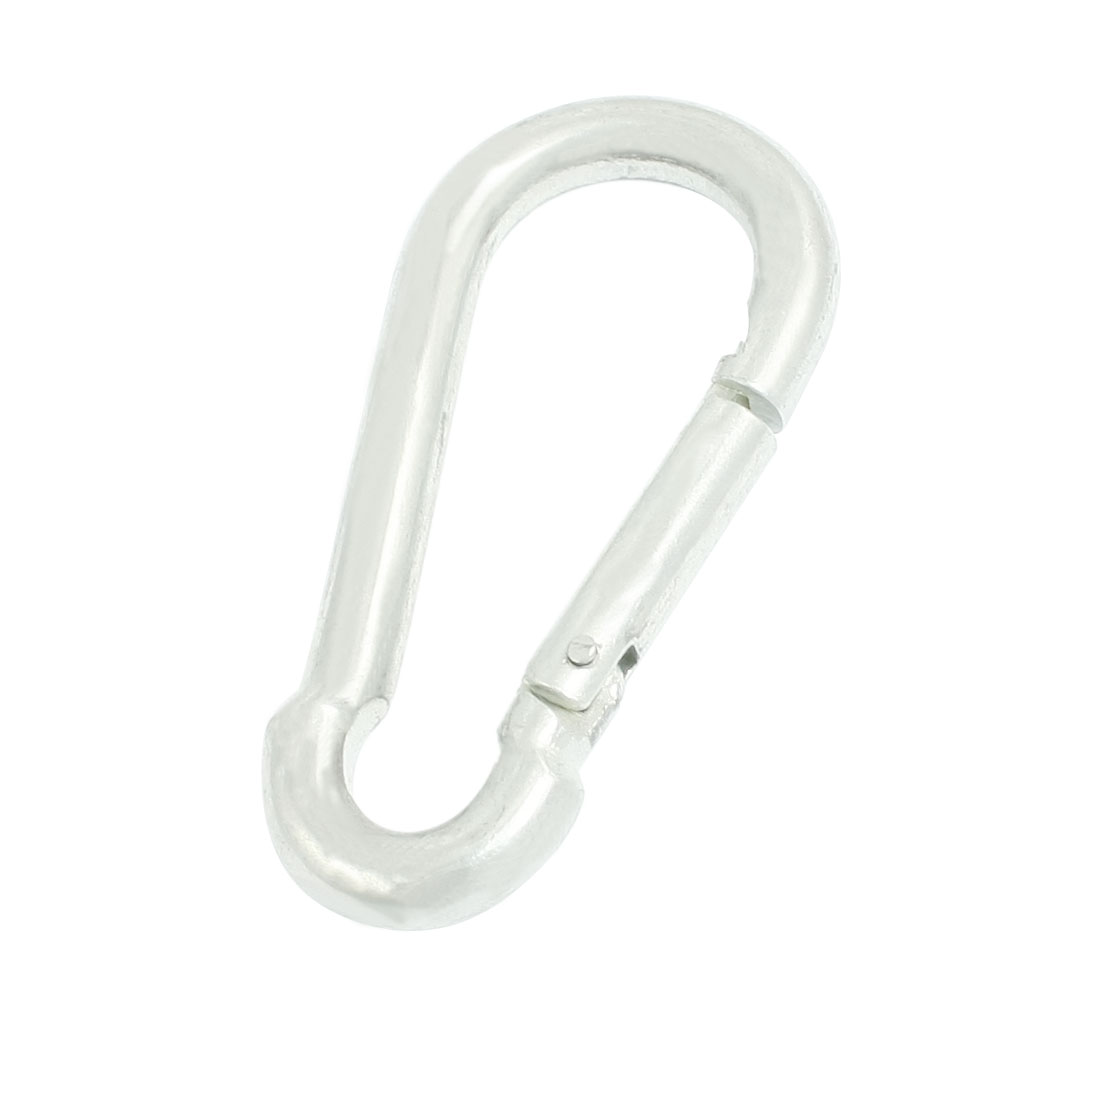 Spring Loaded Gate Lock Silver Tone Metal 8mm Dia Carabiner Hook 3.1""